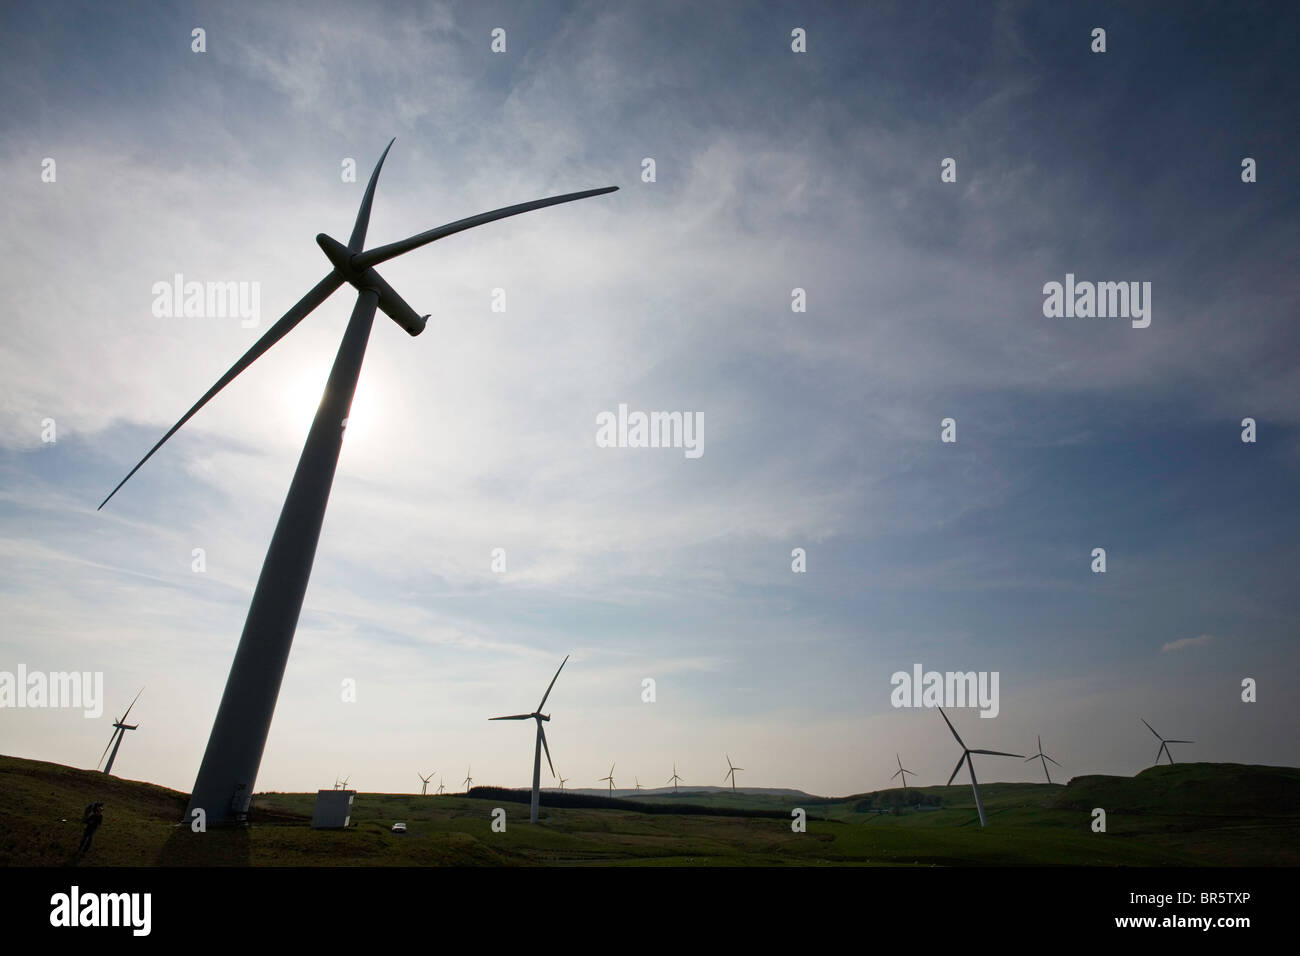 Hadyard hill wind farm in South Ayrshire has 52 wind turbines. It generates over 120MW of zero carbon electricity. - Stock Image